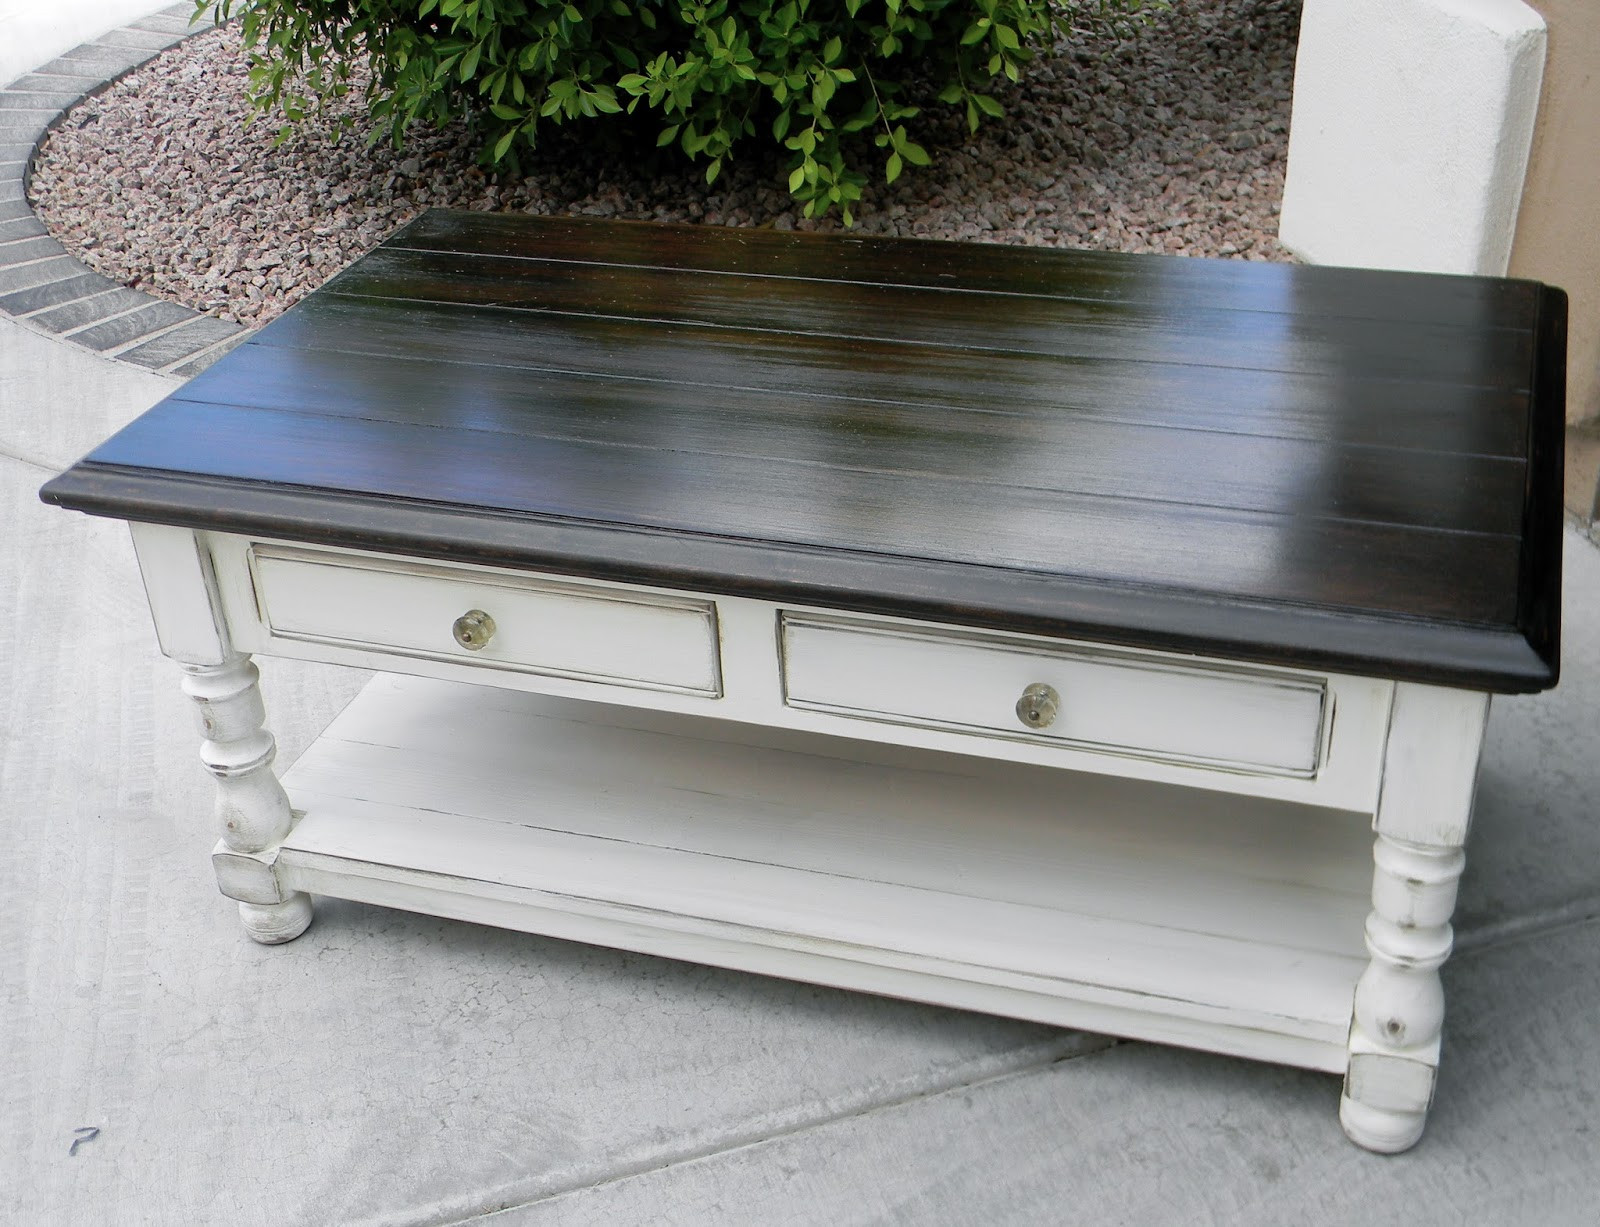 Best ideas about Refinishing Coffee Table Ideas . Save or Pin Little Bit of Paint Refinished Coffee Table Now.